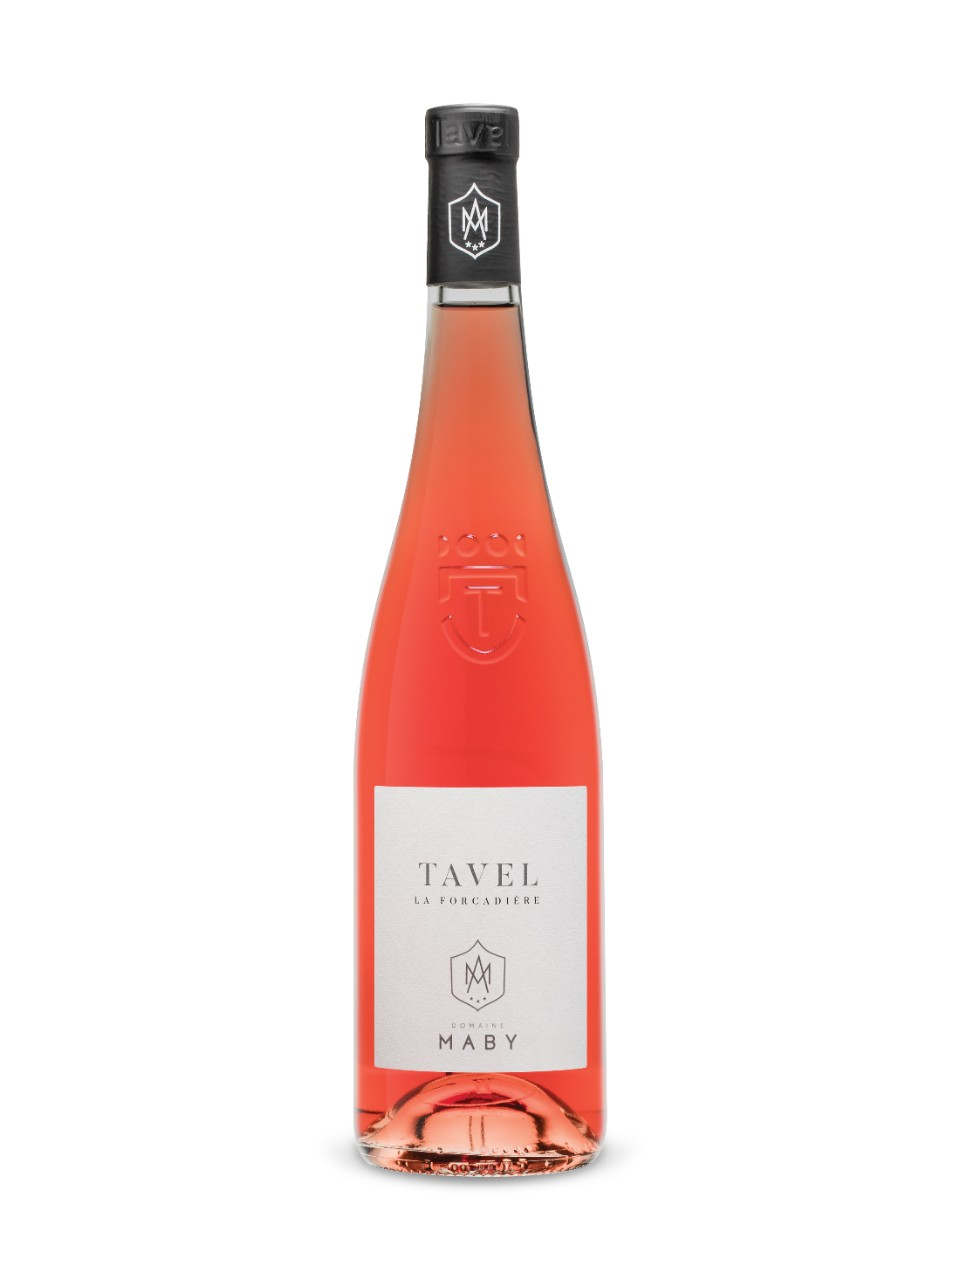 Image for Domaine Maby La Forcadière Tavel Rosé 2018 from LCBO